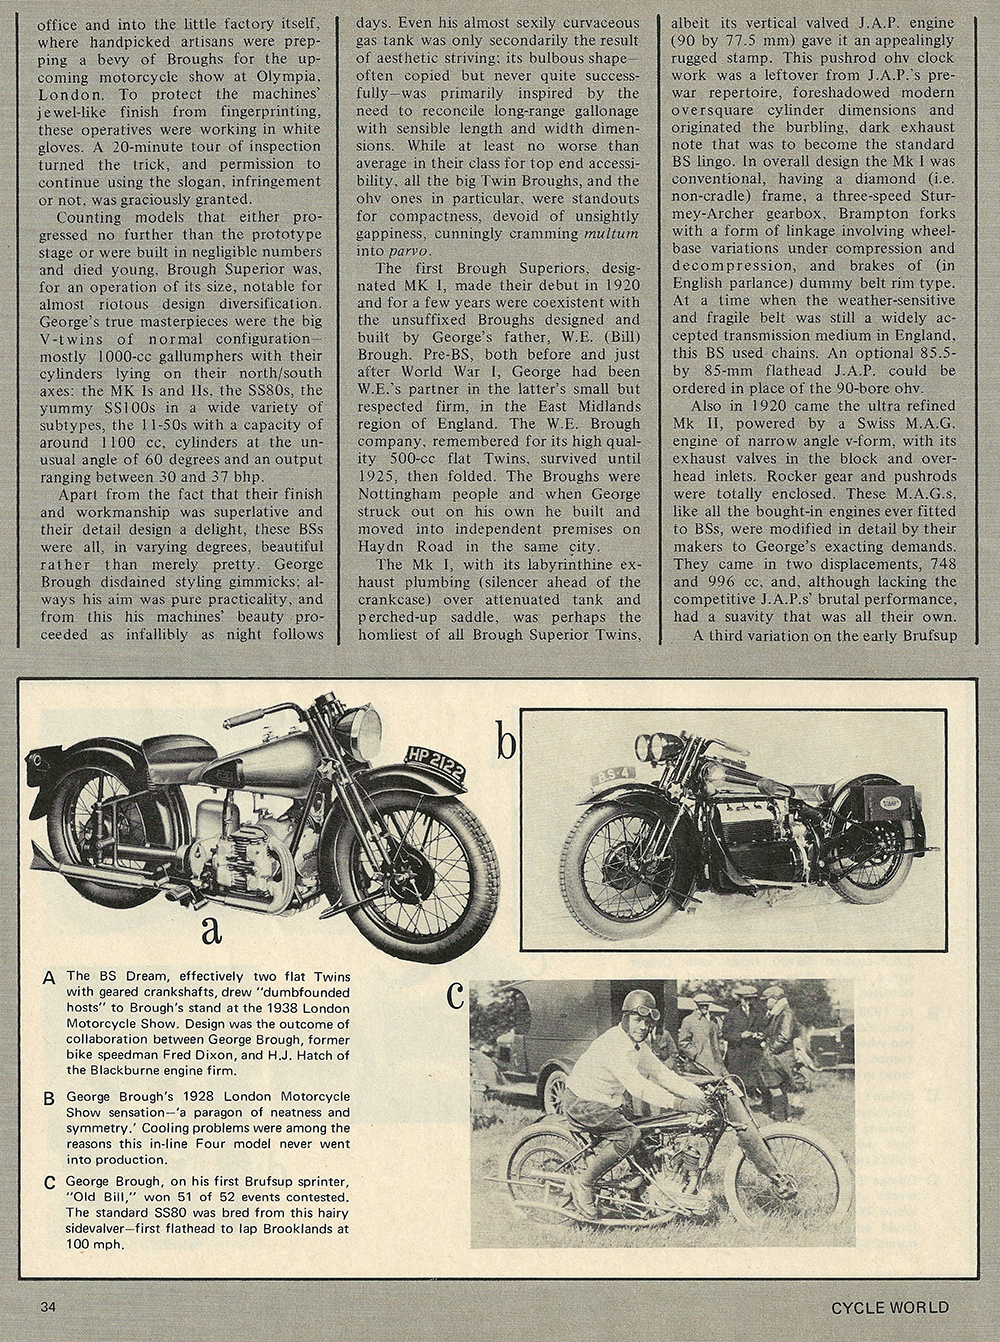 History of Brough Superior 02.jpg